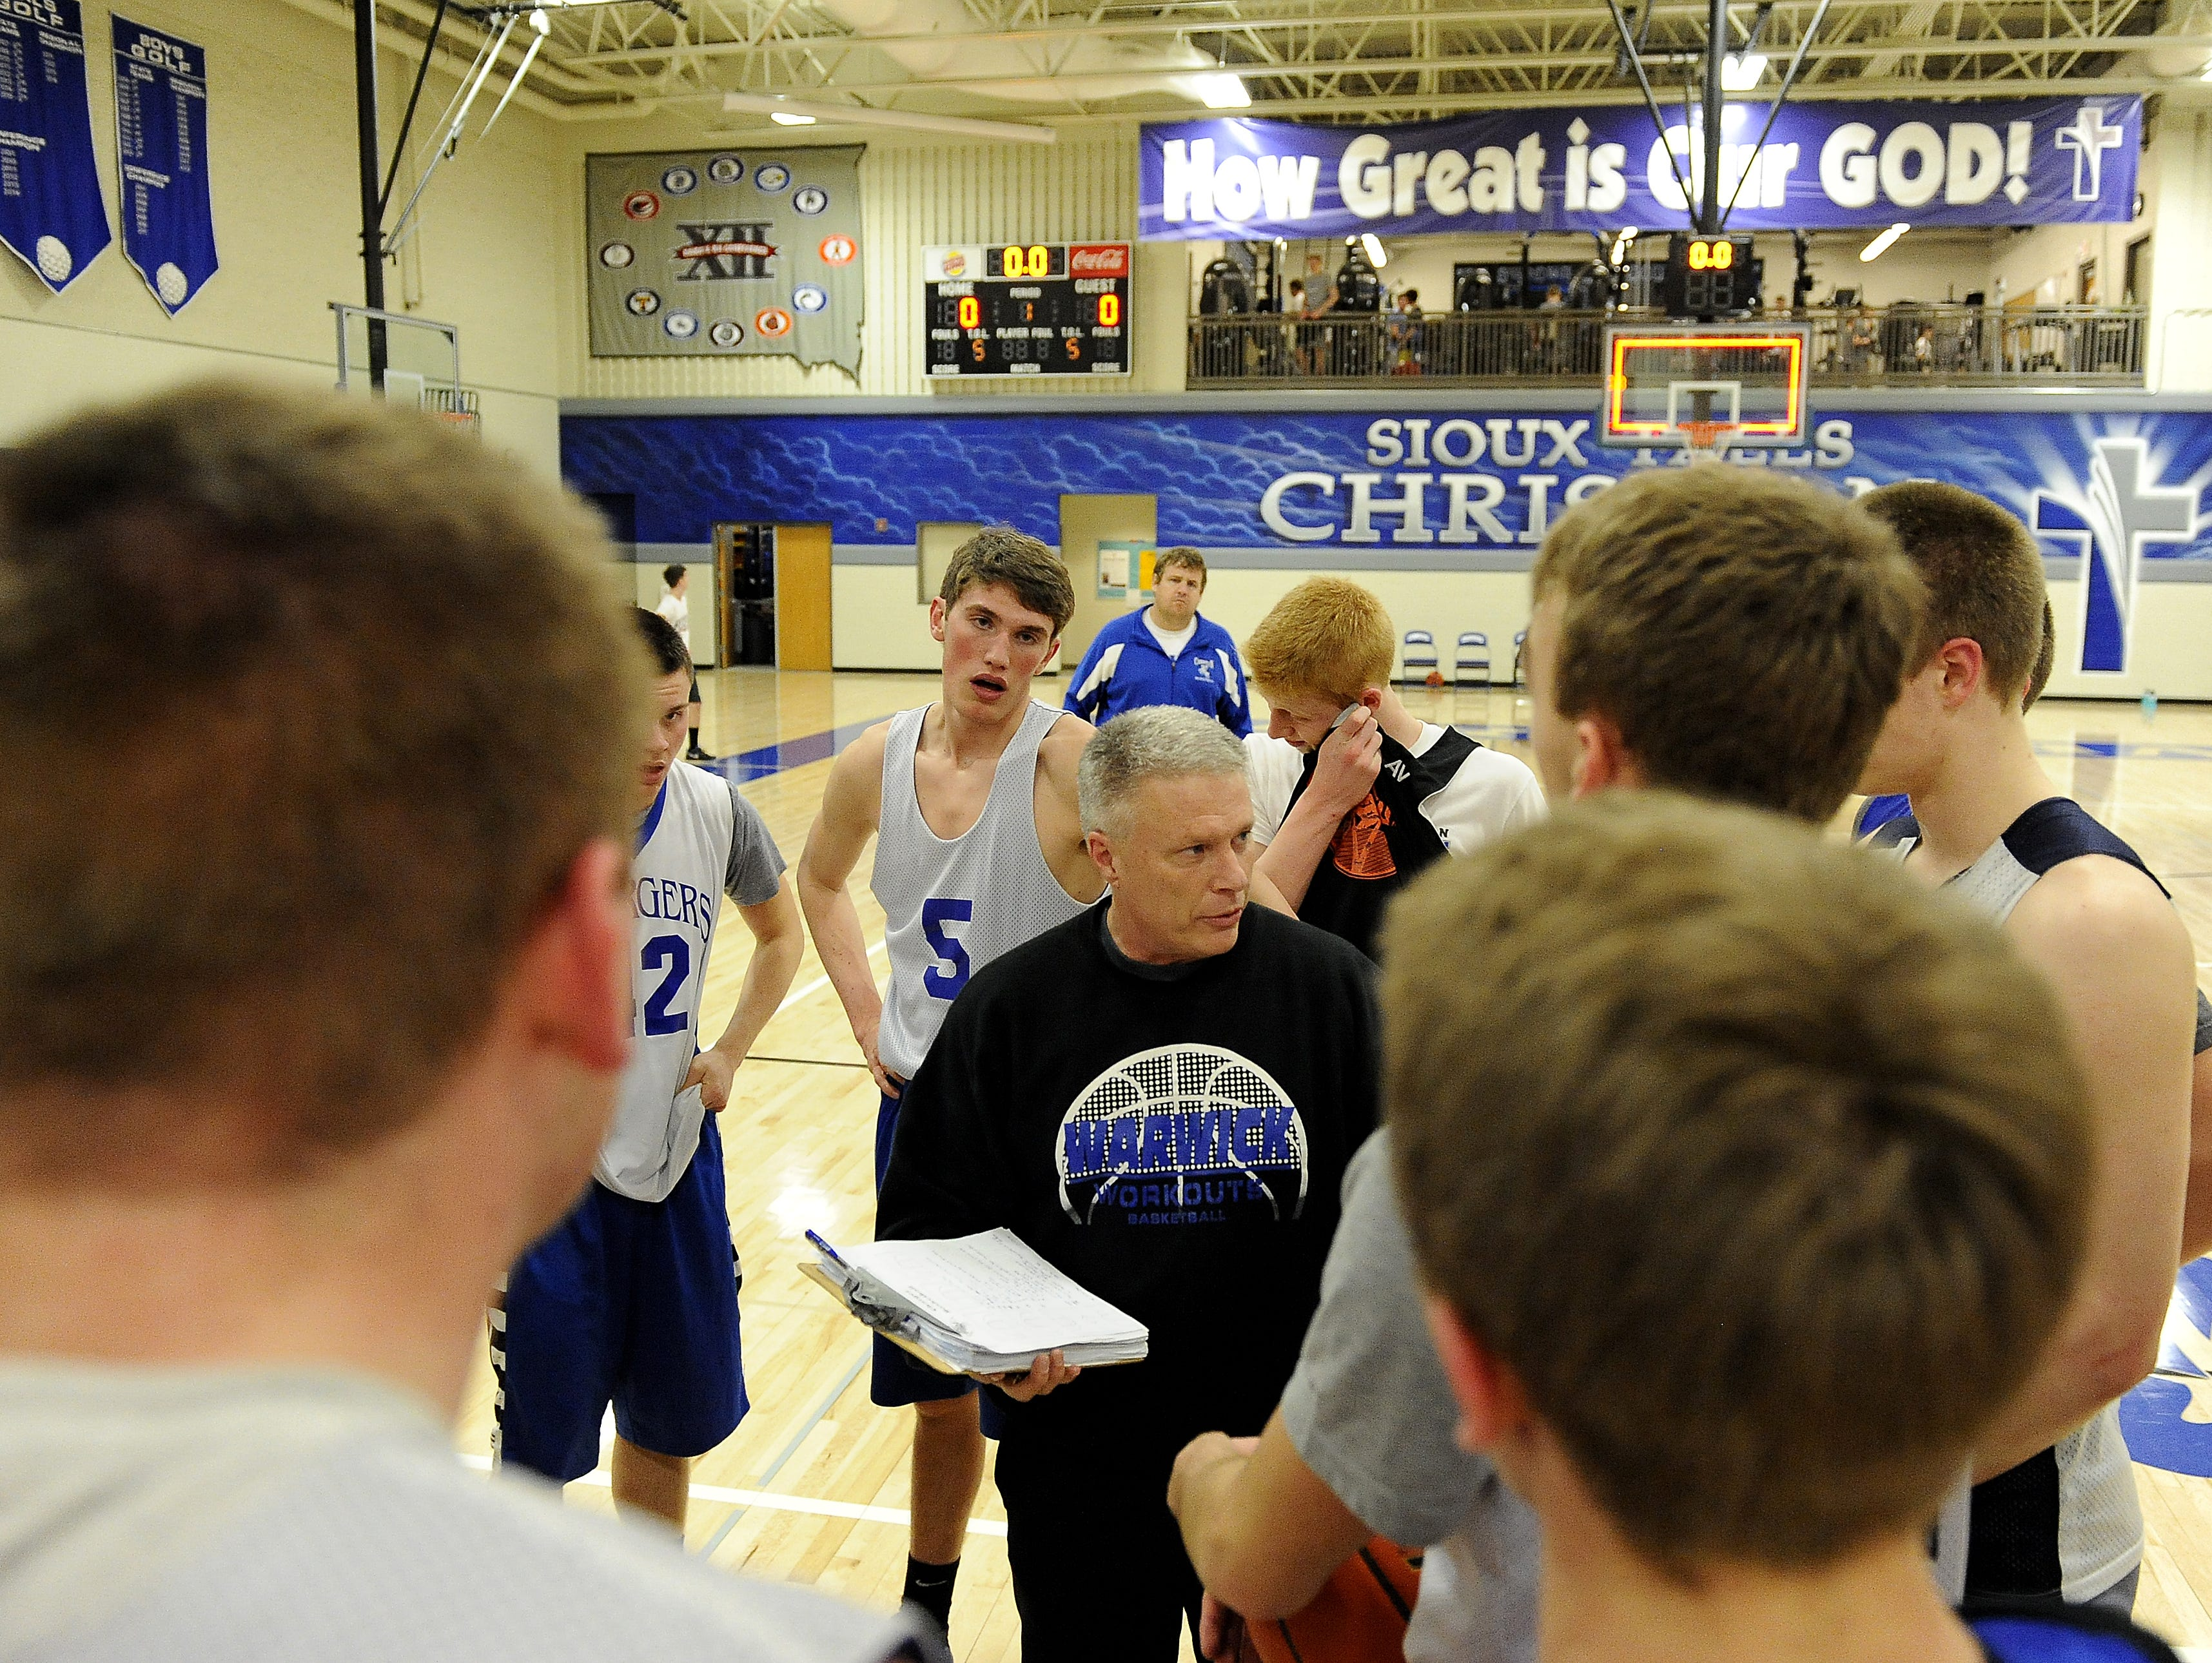 Sioux Falls Christian's coach Mike Schouten talks with his team during basketball practice in Sioux Falls, S.D. Monday, March 14, 2016.